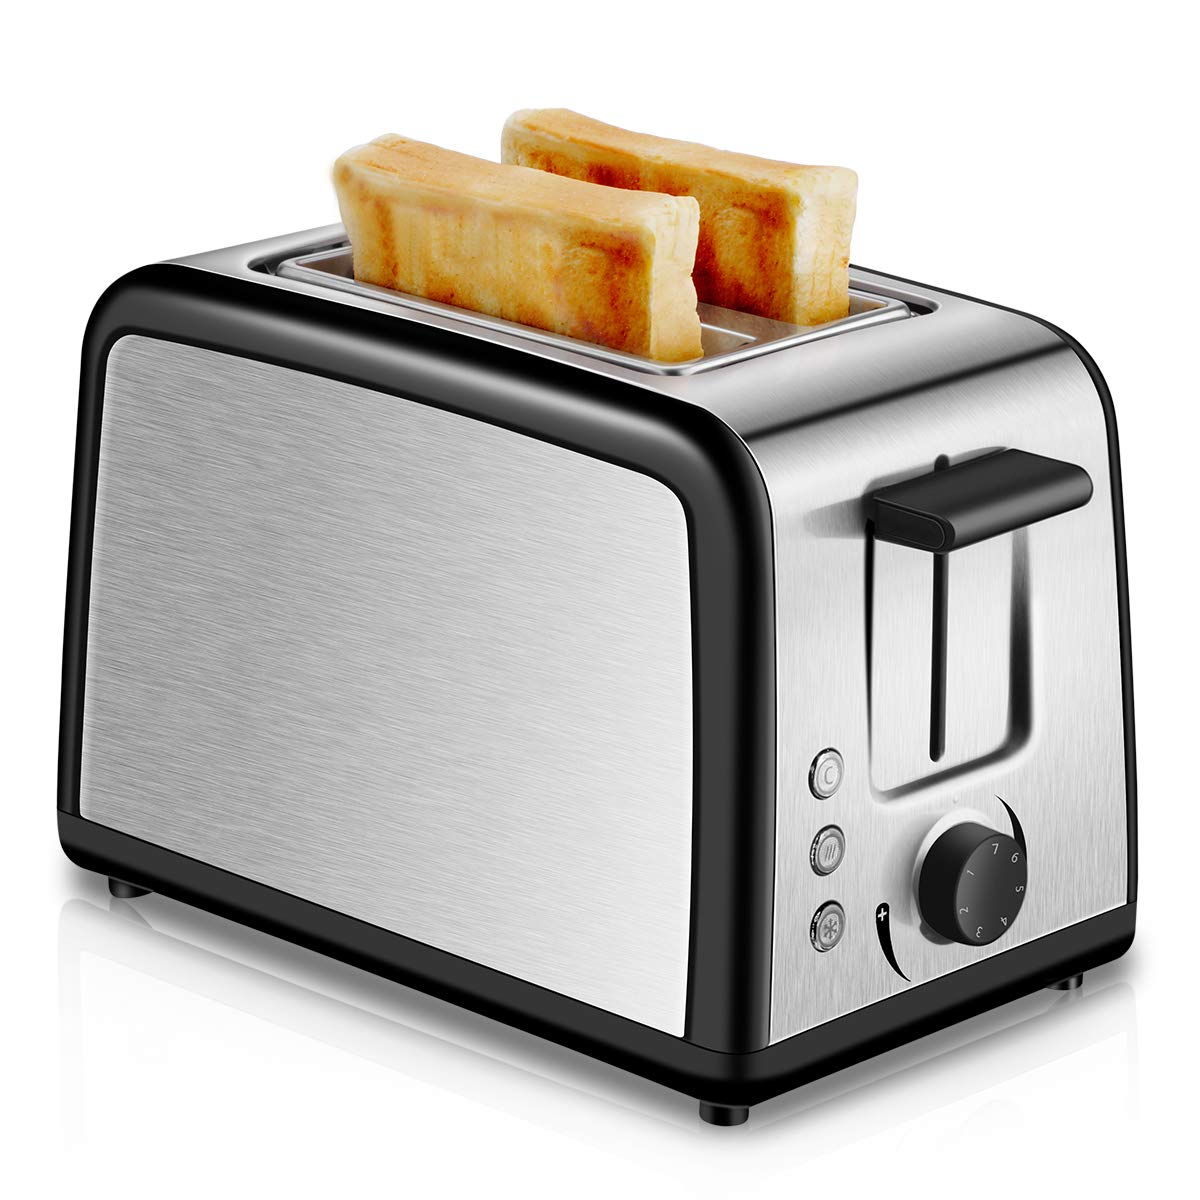 Toaster 2 Slice Compact Brushed Stainless Steel Toasters with Warmer Rack, Warm Touch 2-Slice Toaster with Warming Rack, Defrost Reheat Cancel Button, One Touch Quickly Toasts and Removable Crumb Tray (Silver) by CUSIBOX